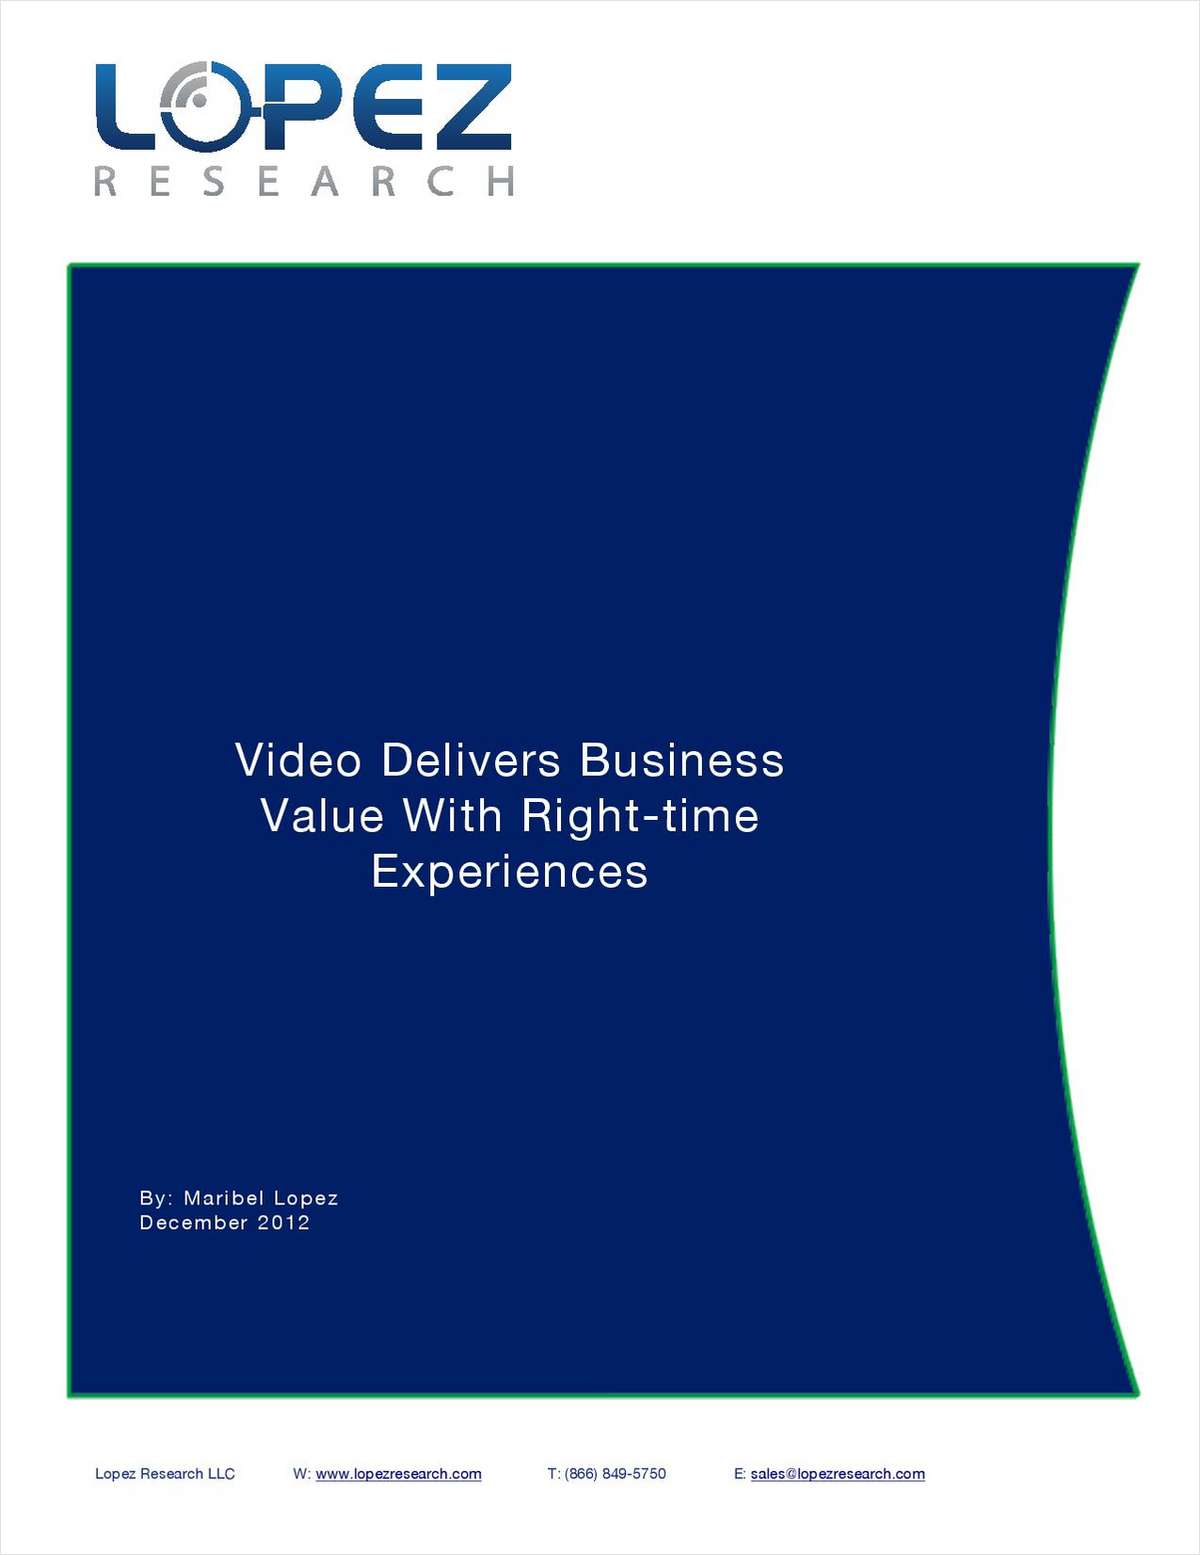 Video Delivers Business Value with Right-time Experiences